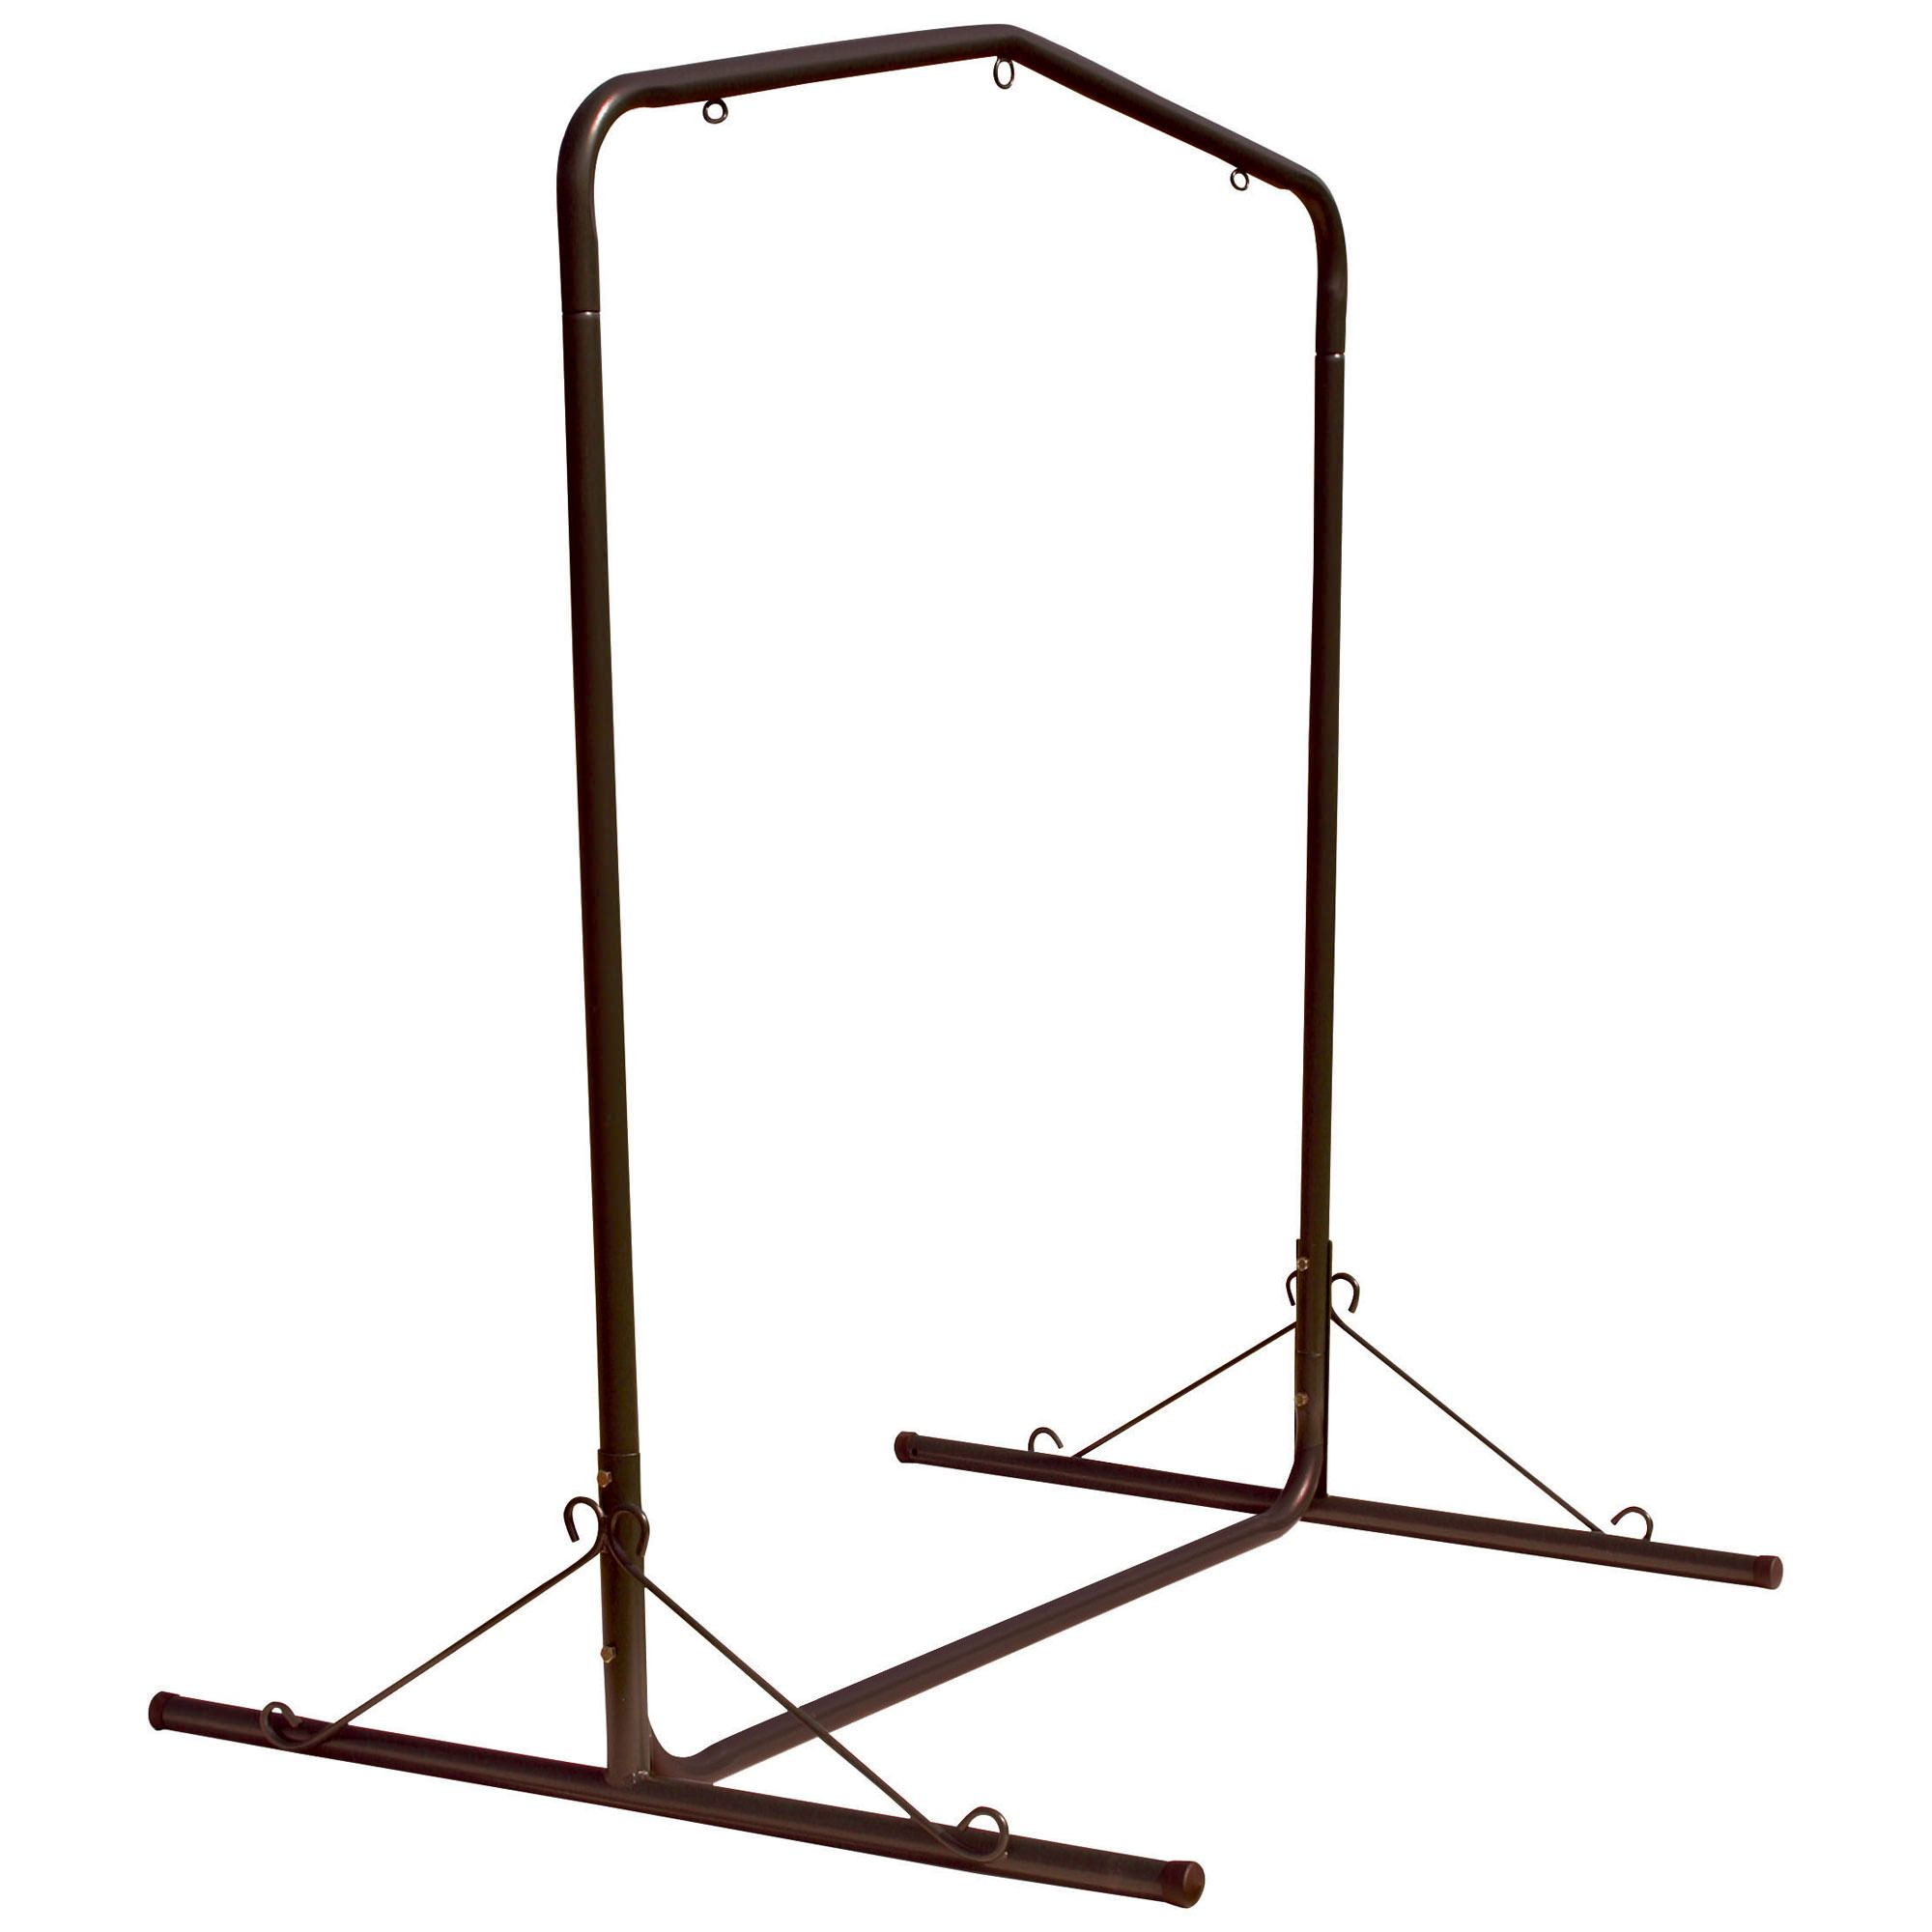 steel hammock chair stand craigslist tables and chairs bronze metal swing on sale swslbr